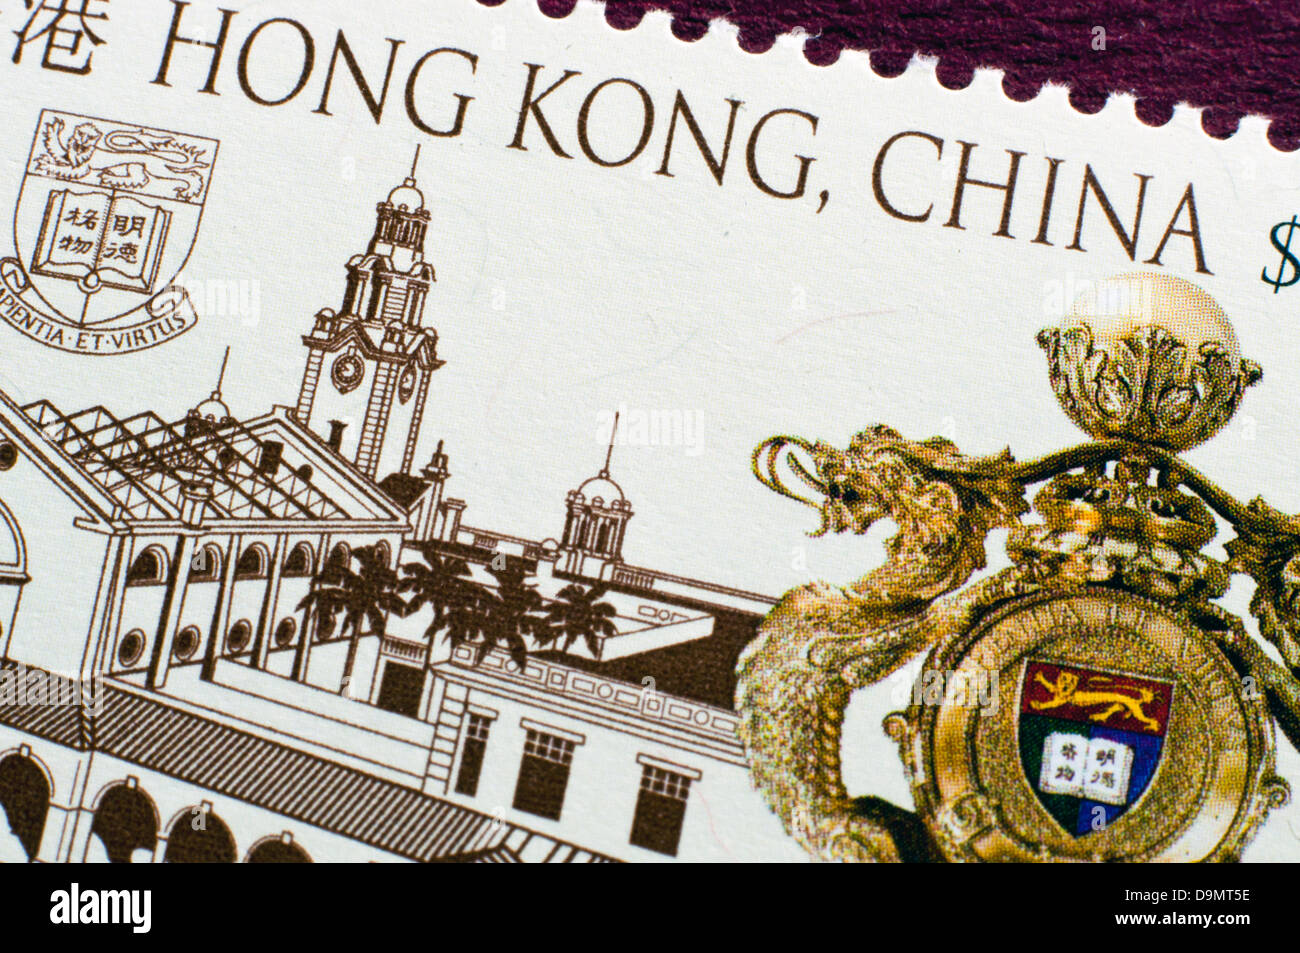 hong kong postage stamp with university theme in studio setting - Stock Image